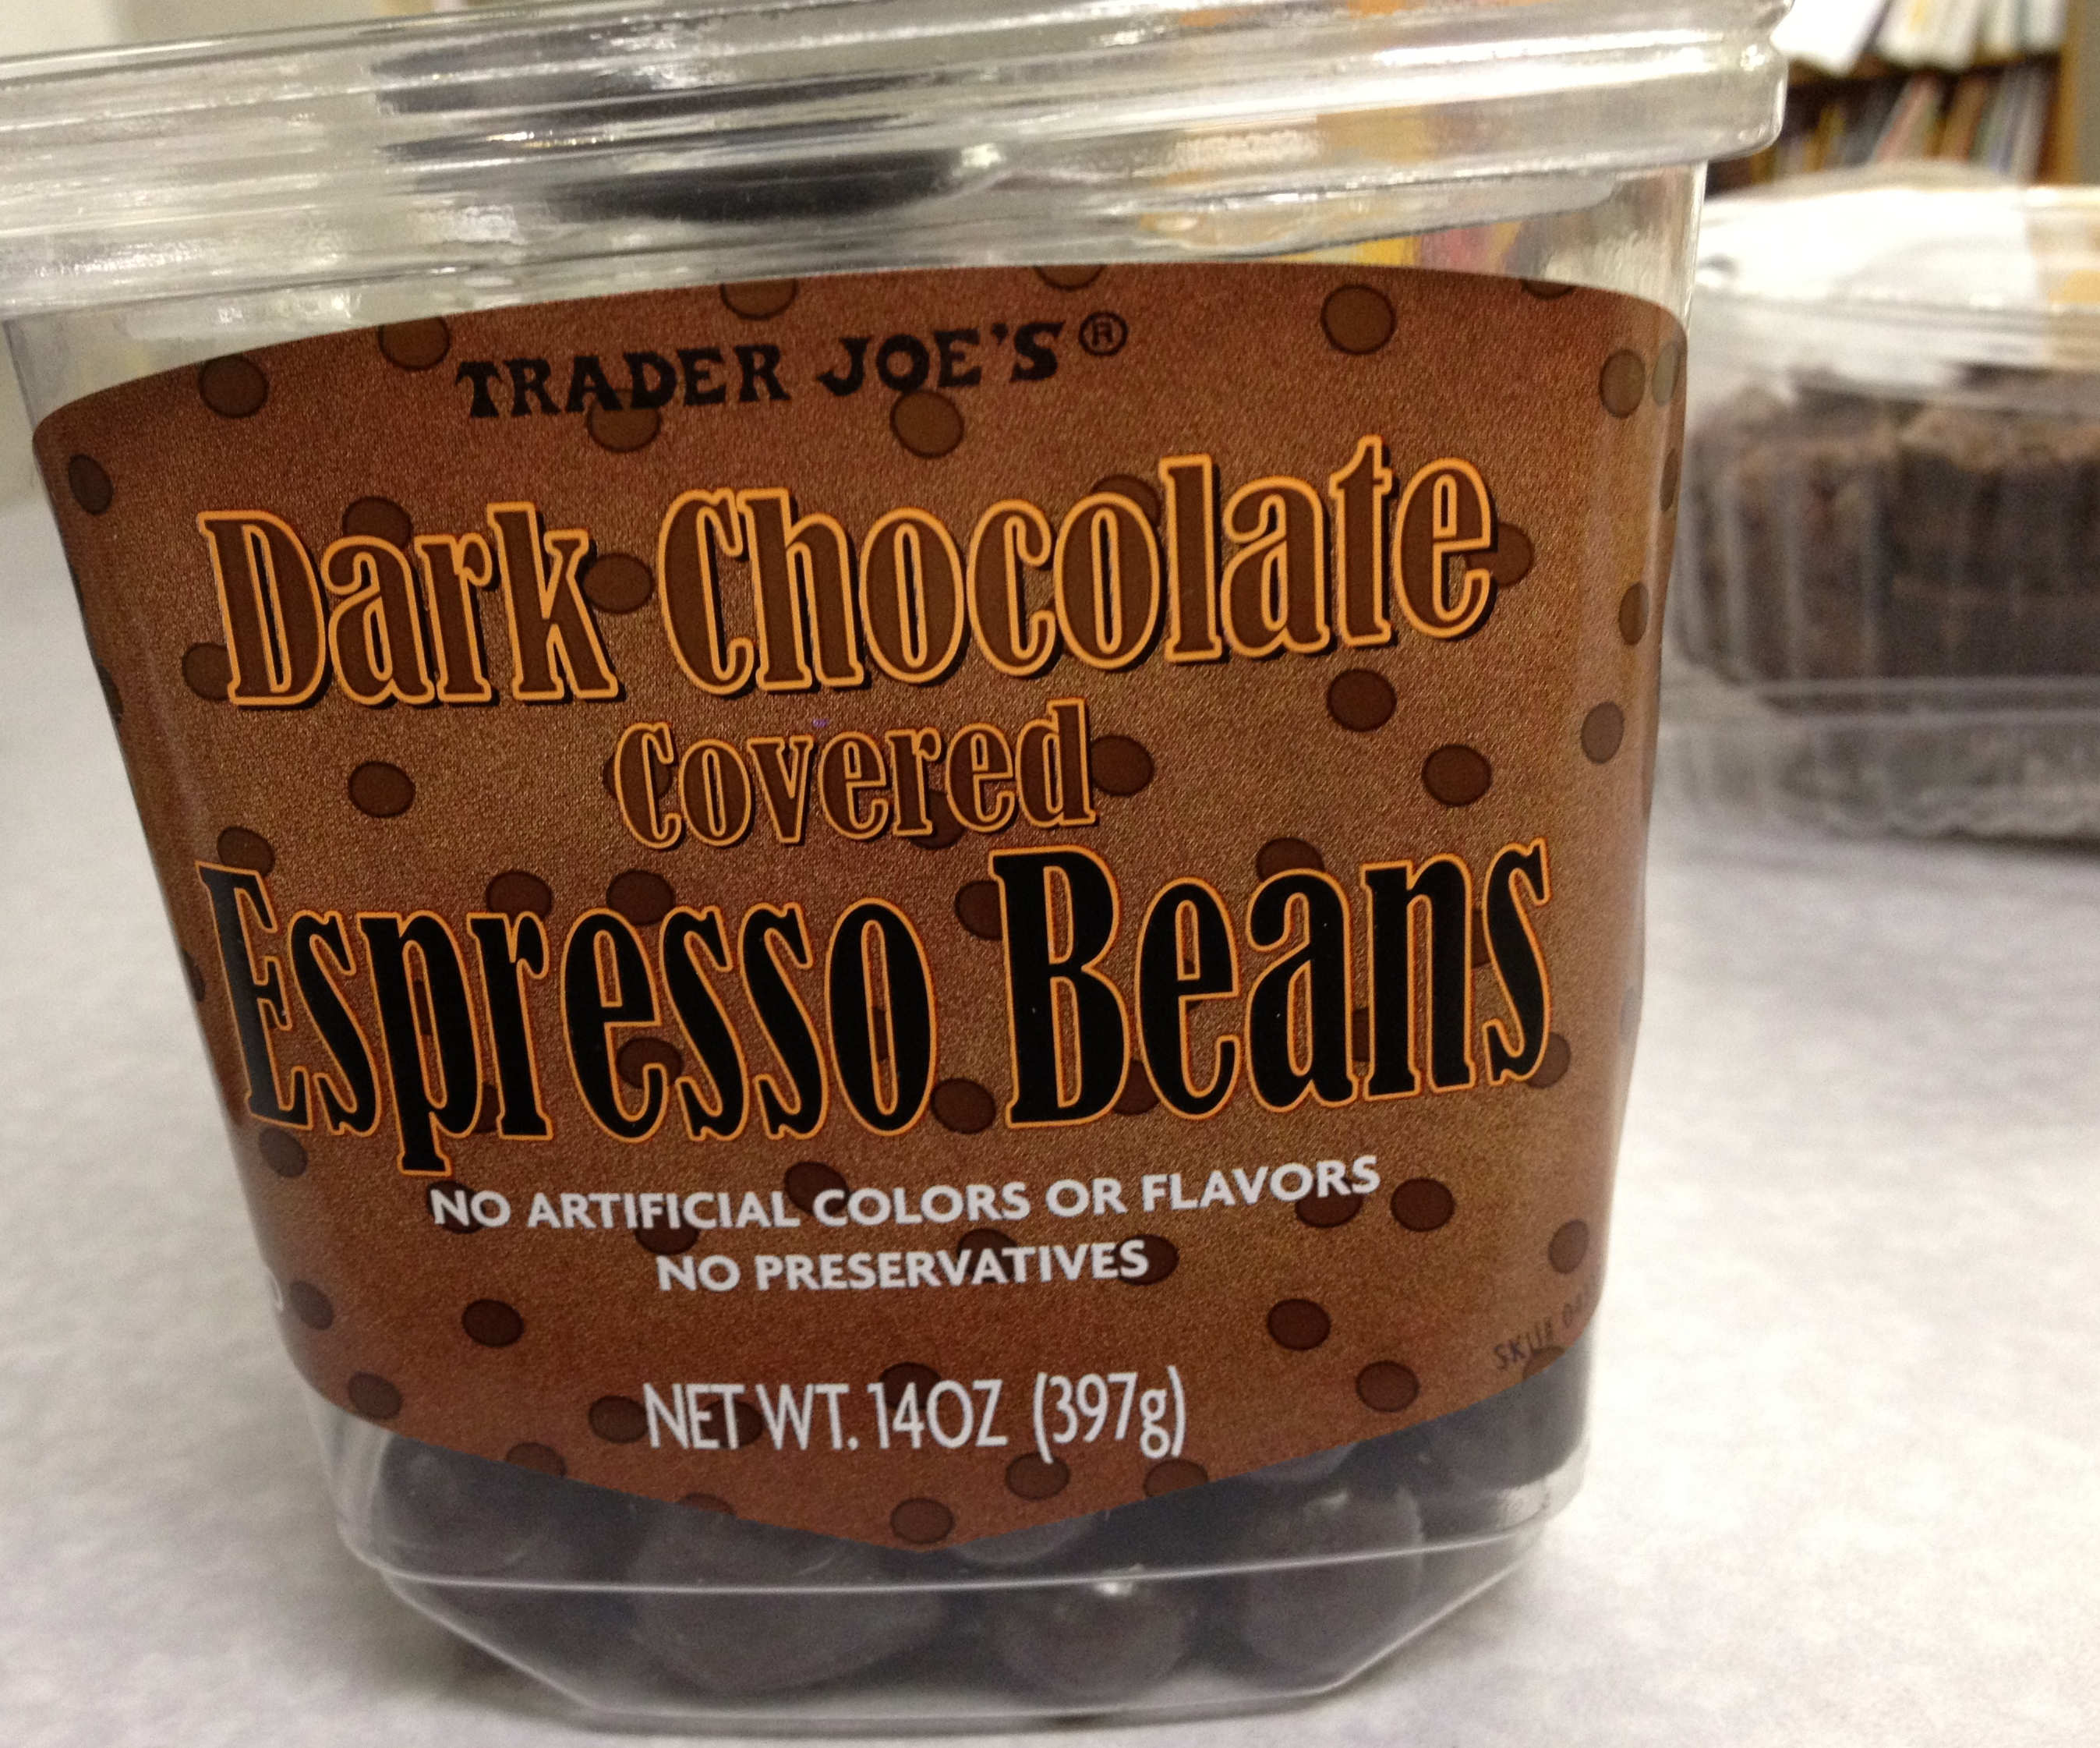 Dark chocolate espresso beans: Shhh! Don't tell anyone! | Things I ...